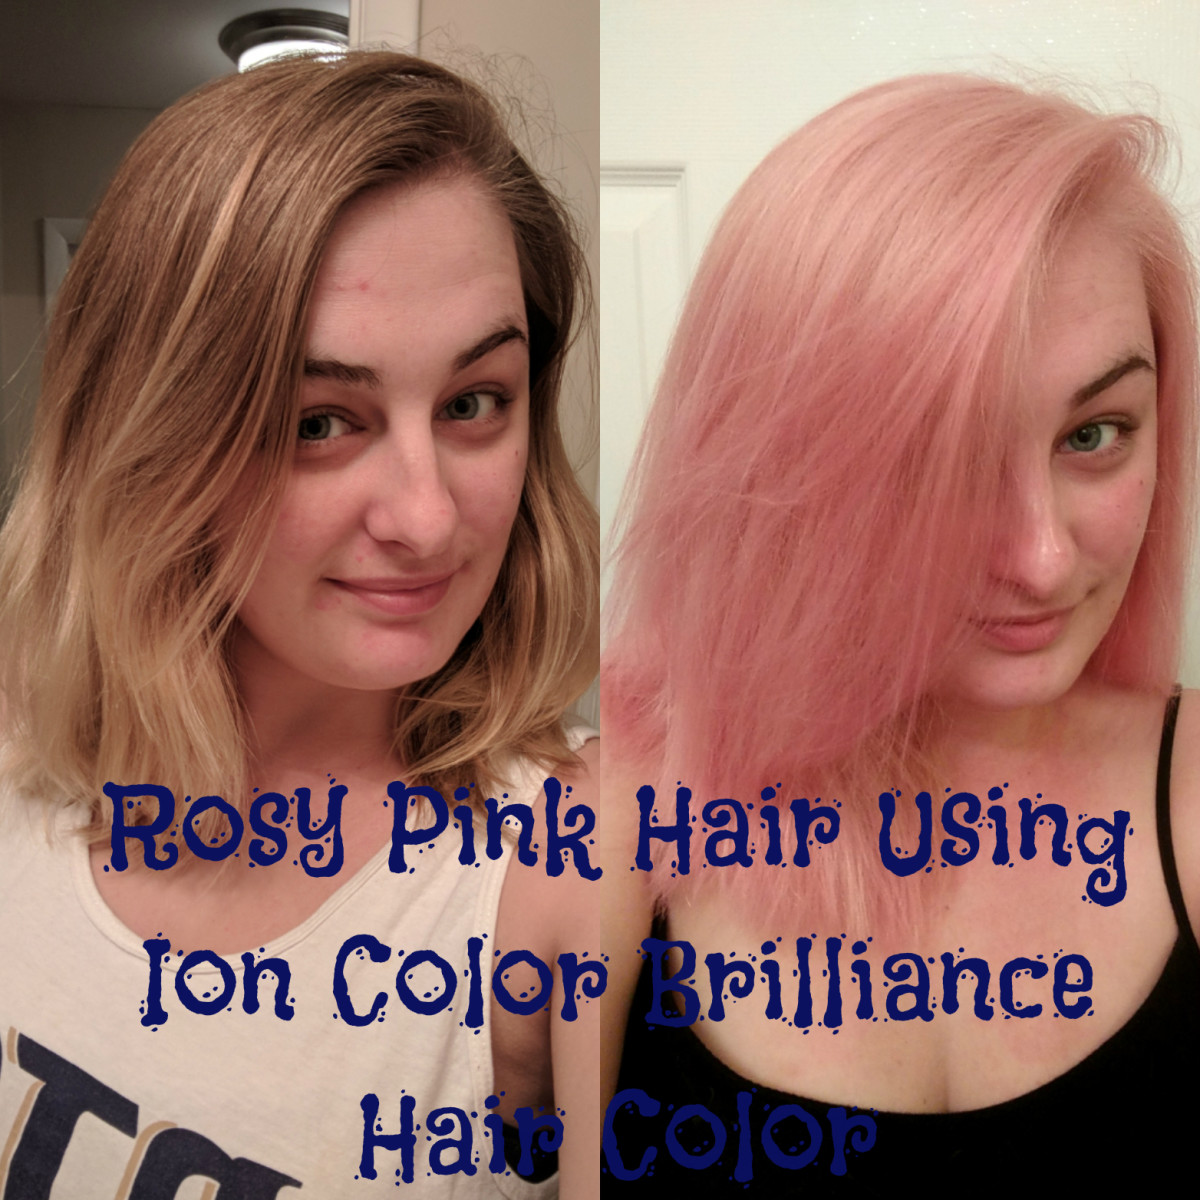 Hair Diy How To Get Rose Quartz Hair Using Ion Color Brilliance